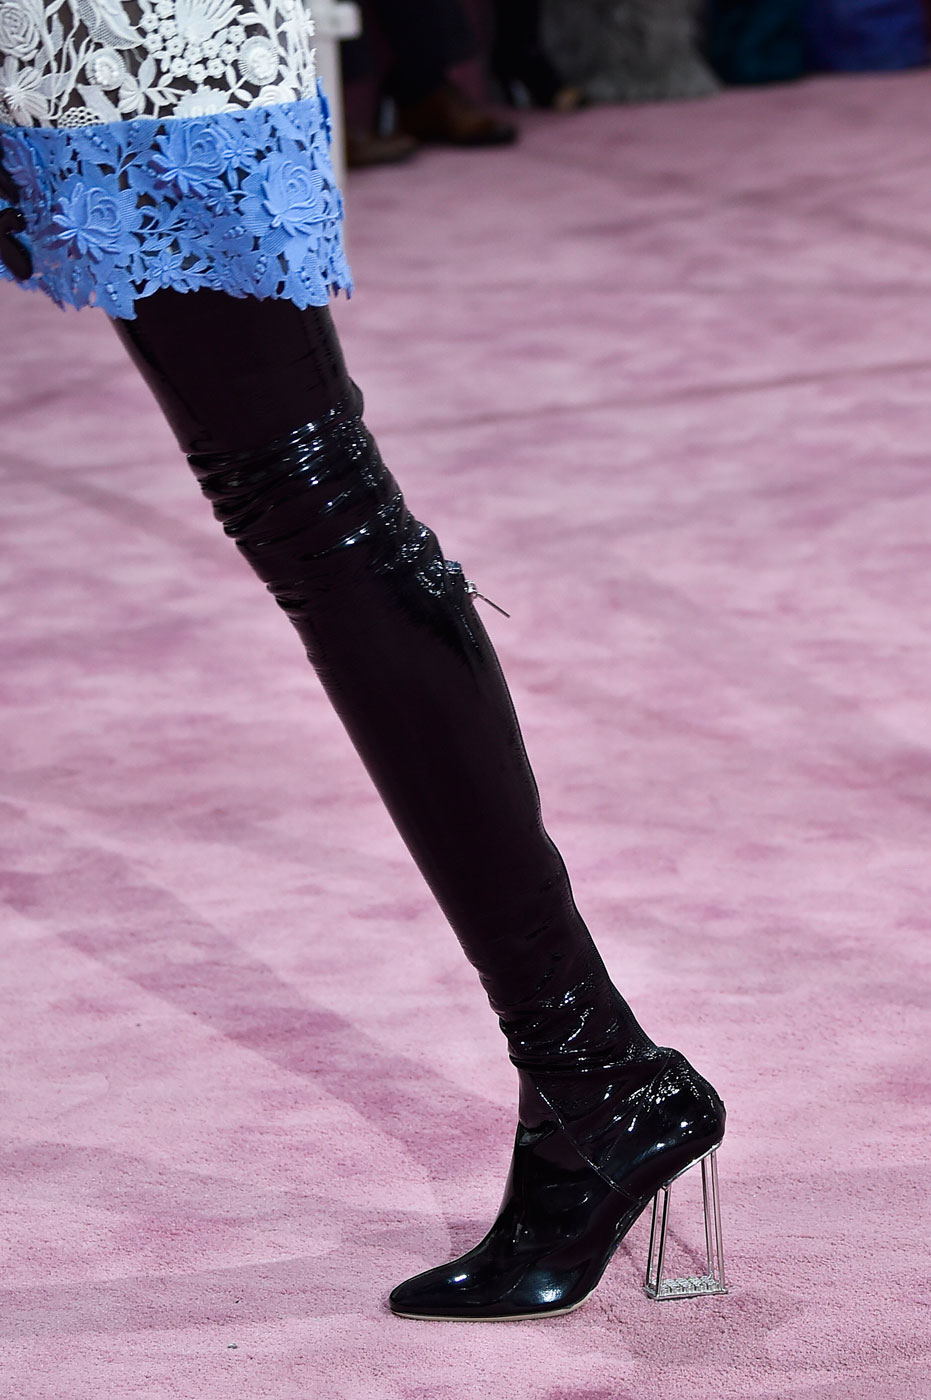 Christian-Dior-fashion-runway-show-close-ups-haute-couture-paris-spring-summer-2015-the-impression-174